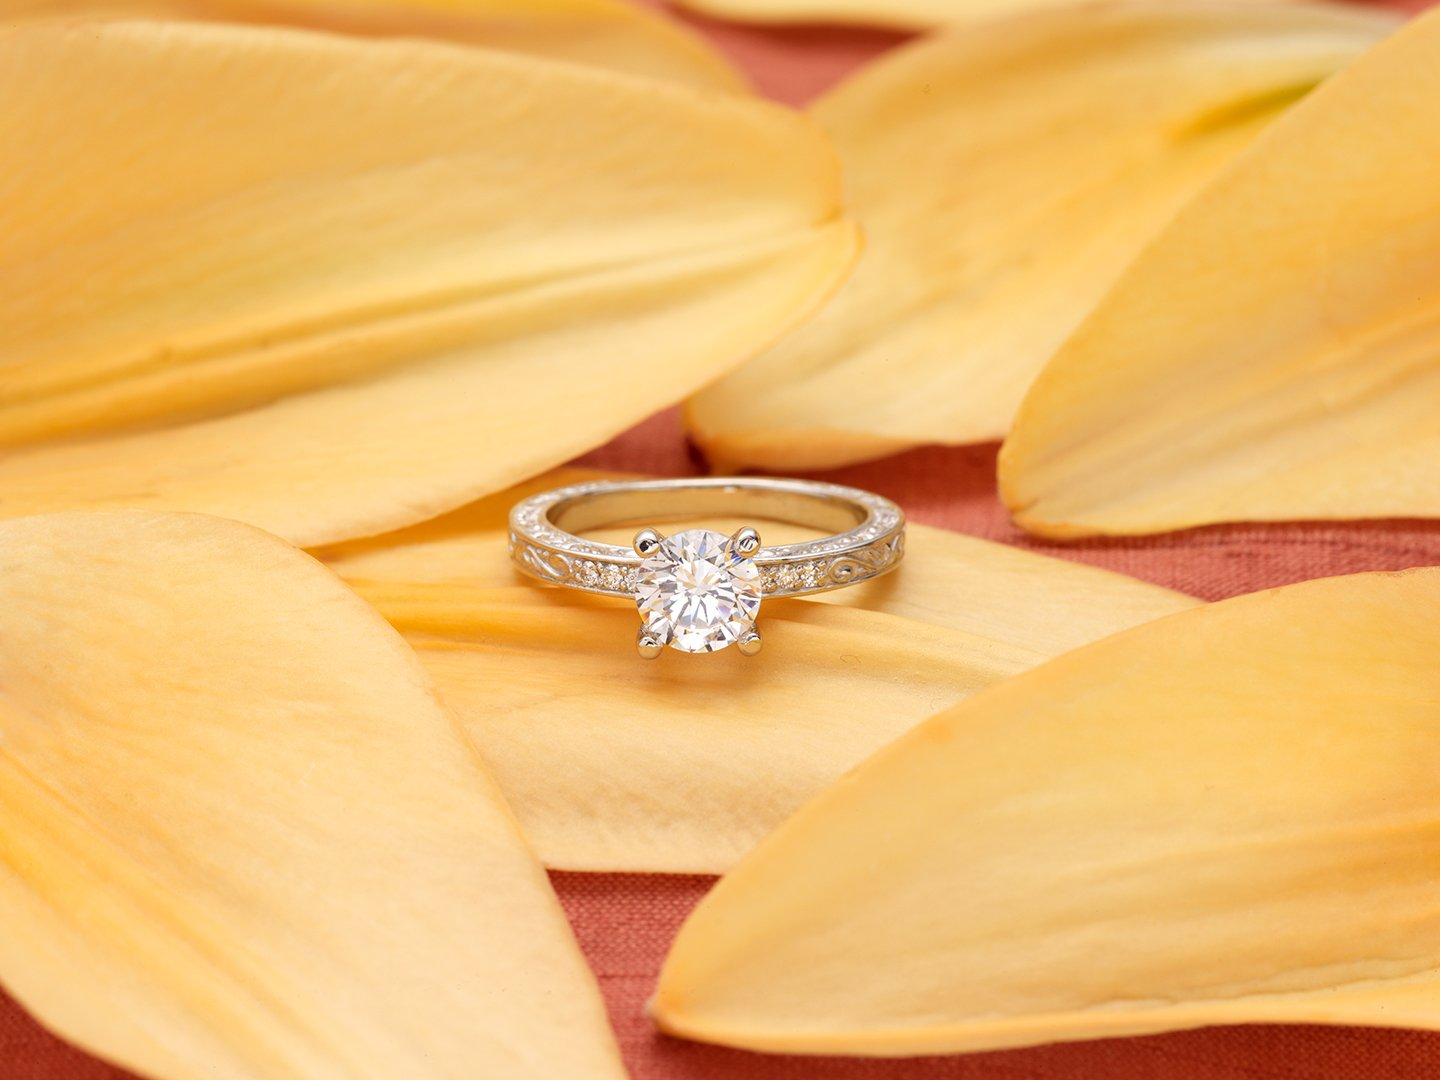 Brilliant earth vintage wedding rings